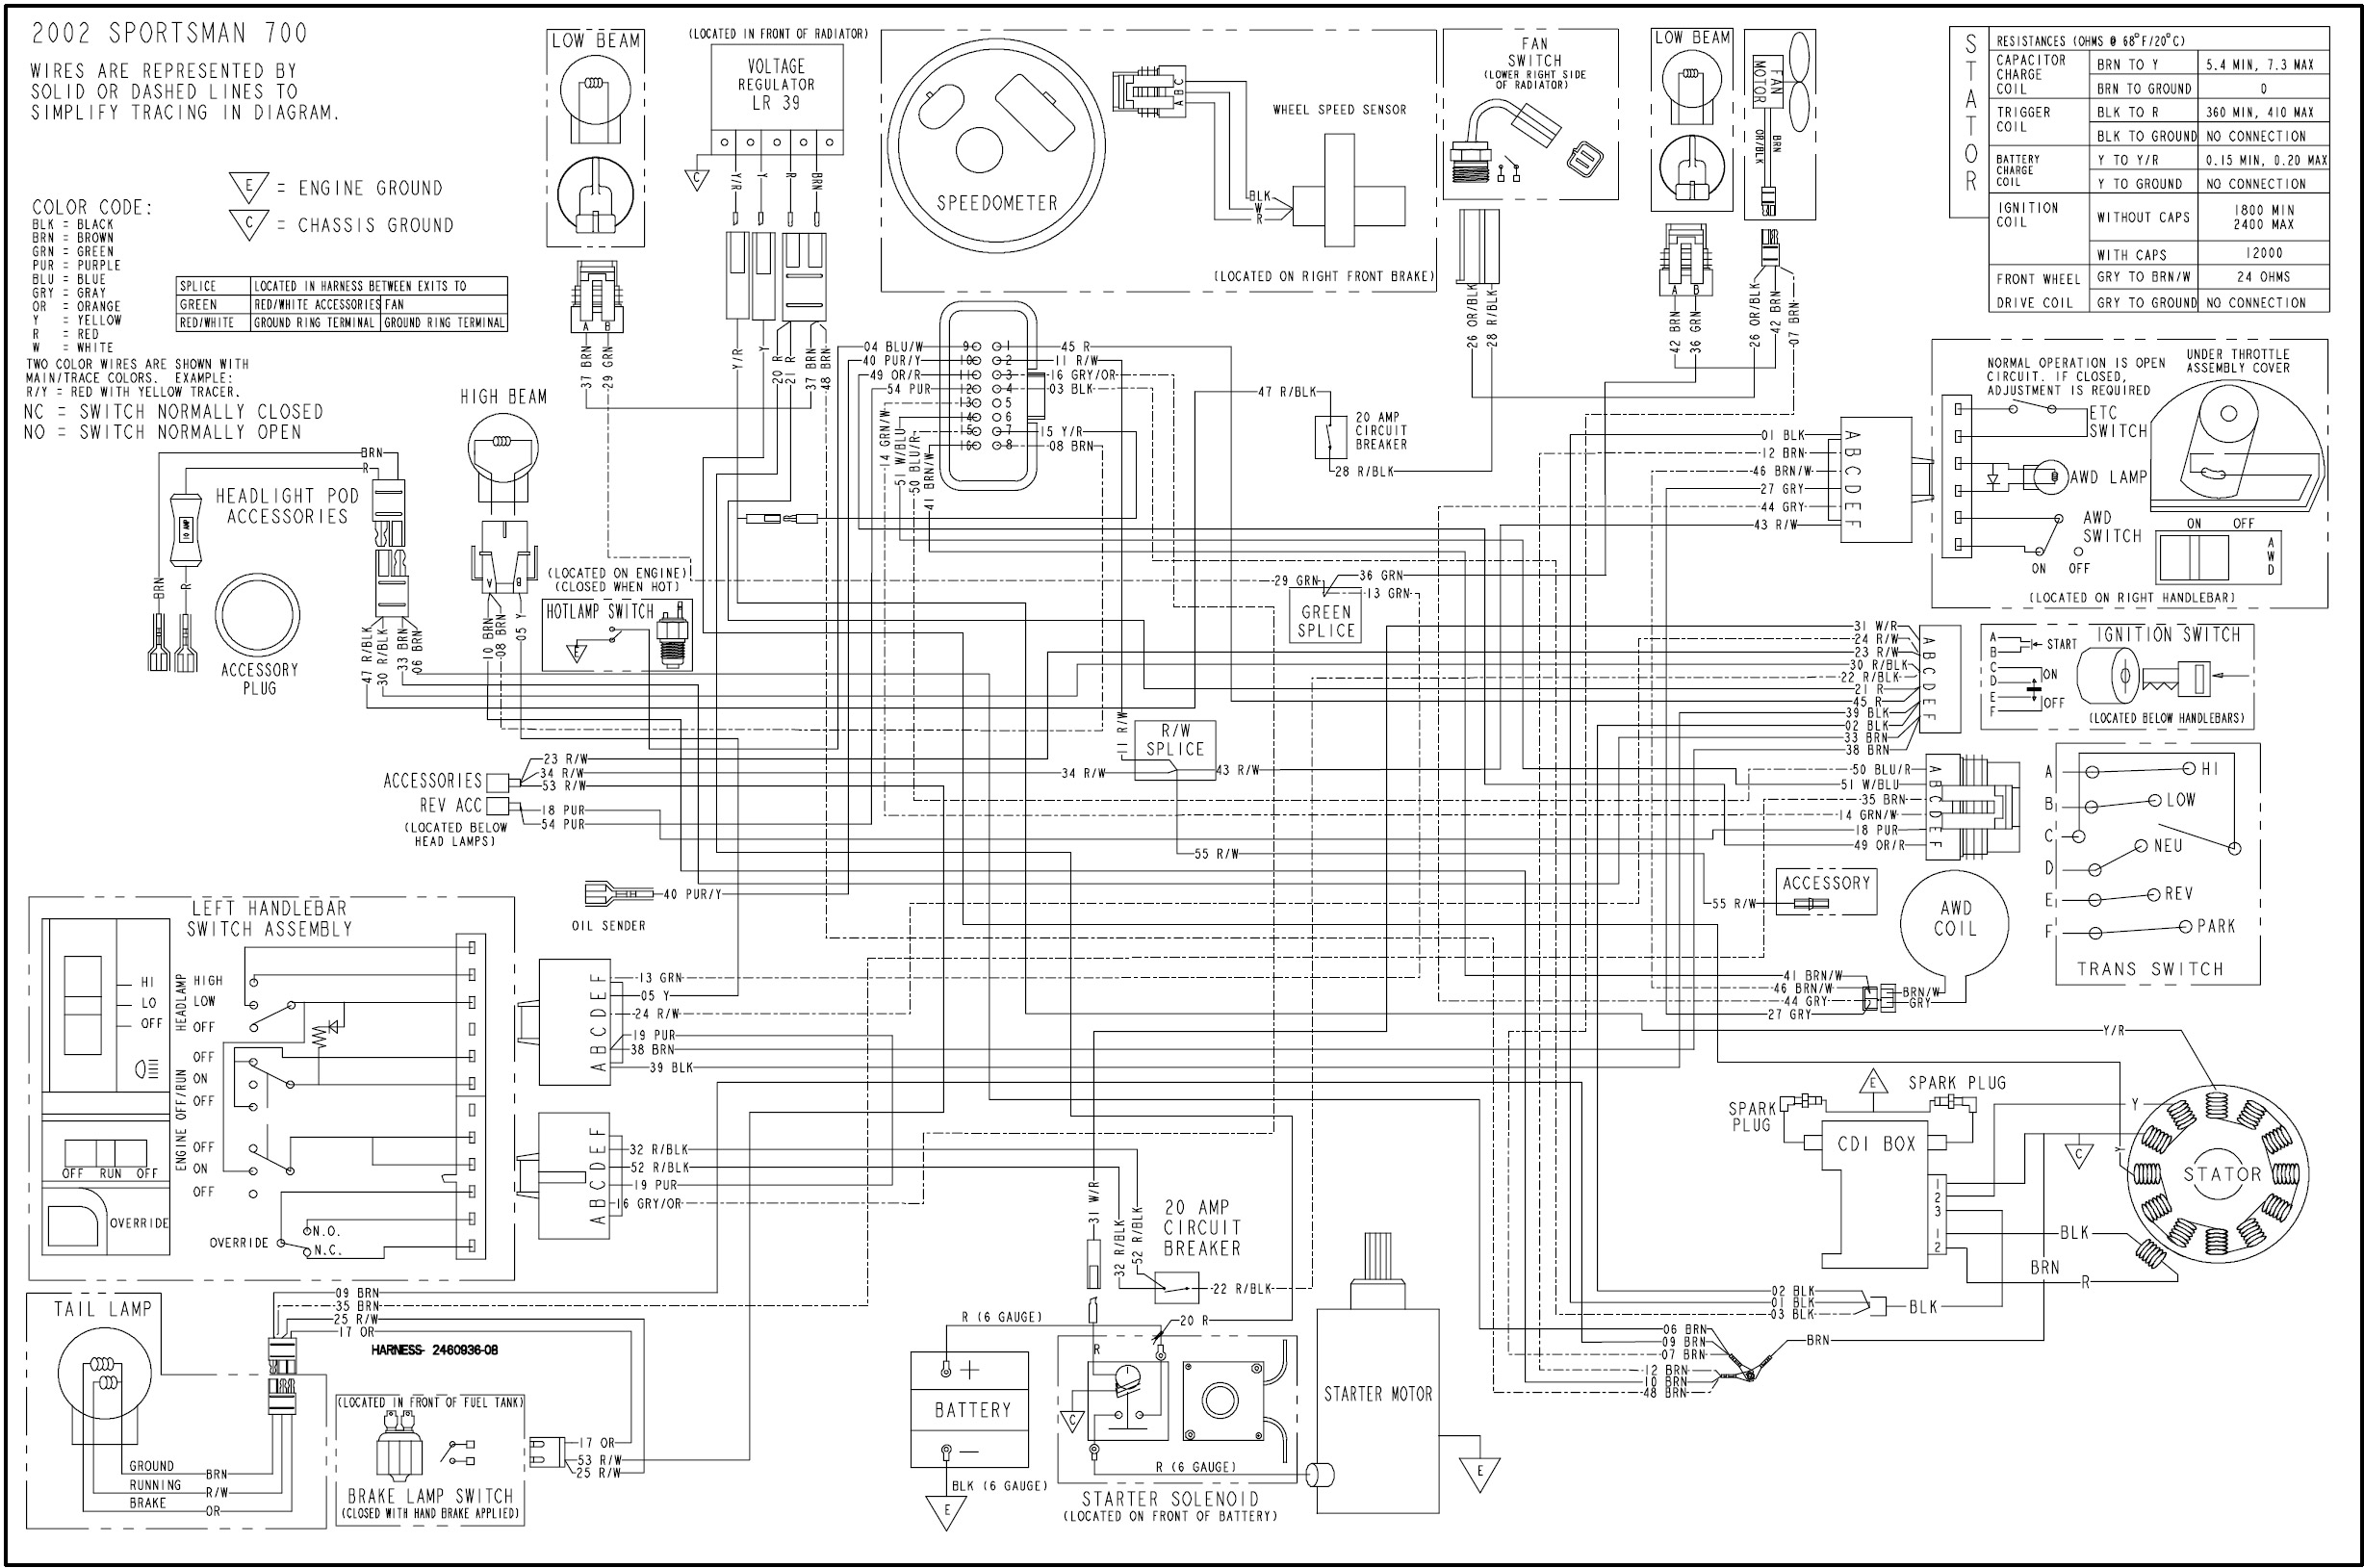 Wire Diagram Honda Rancher Trx350fe Electrical Wiring Diagrams 420 Picture 350 Es 2002 Schematic Cb900f